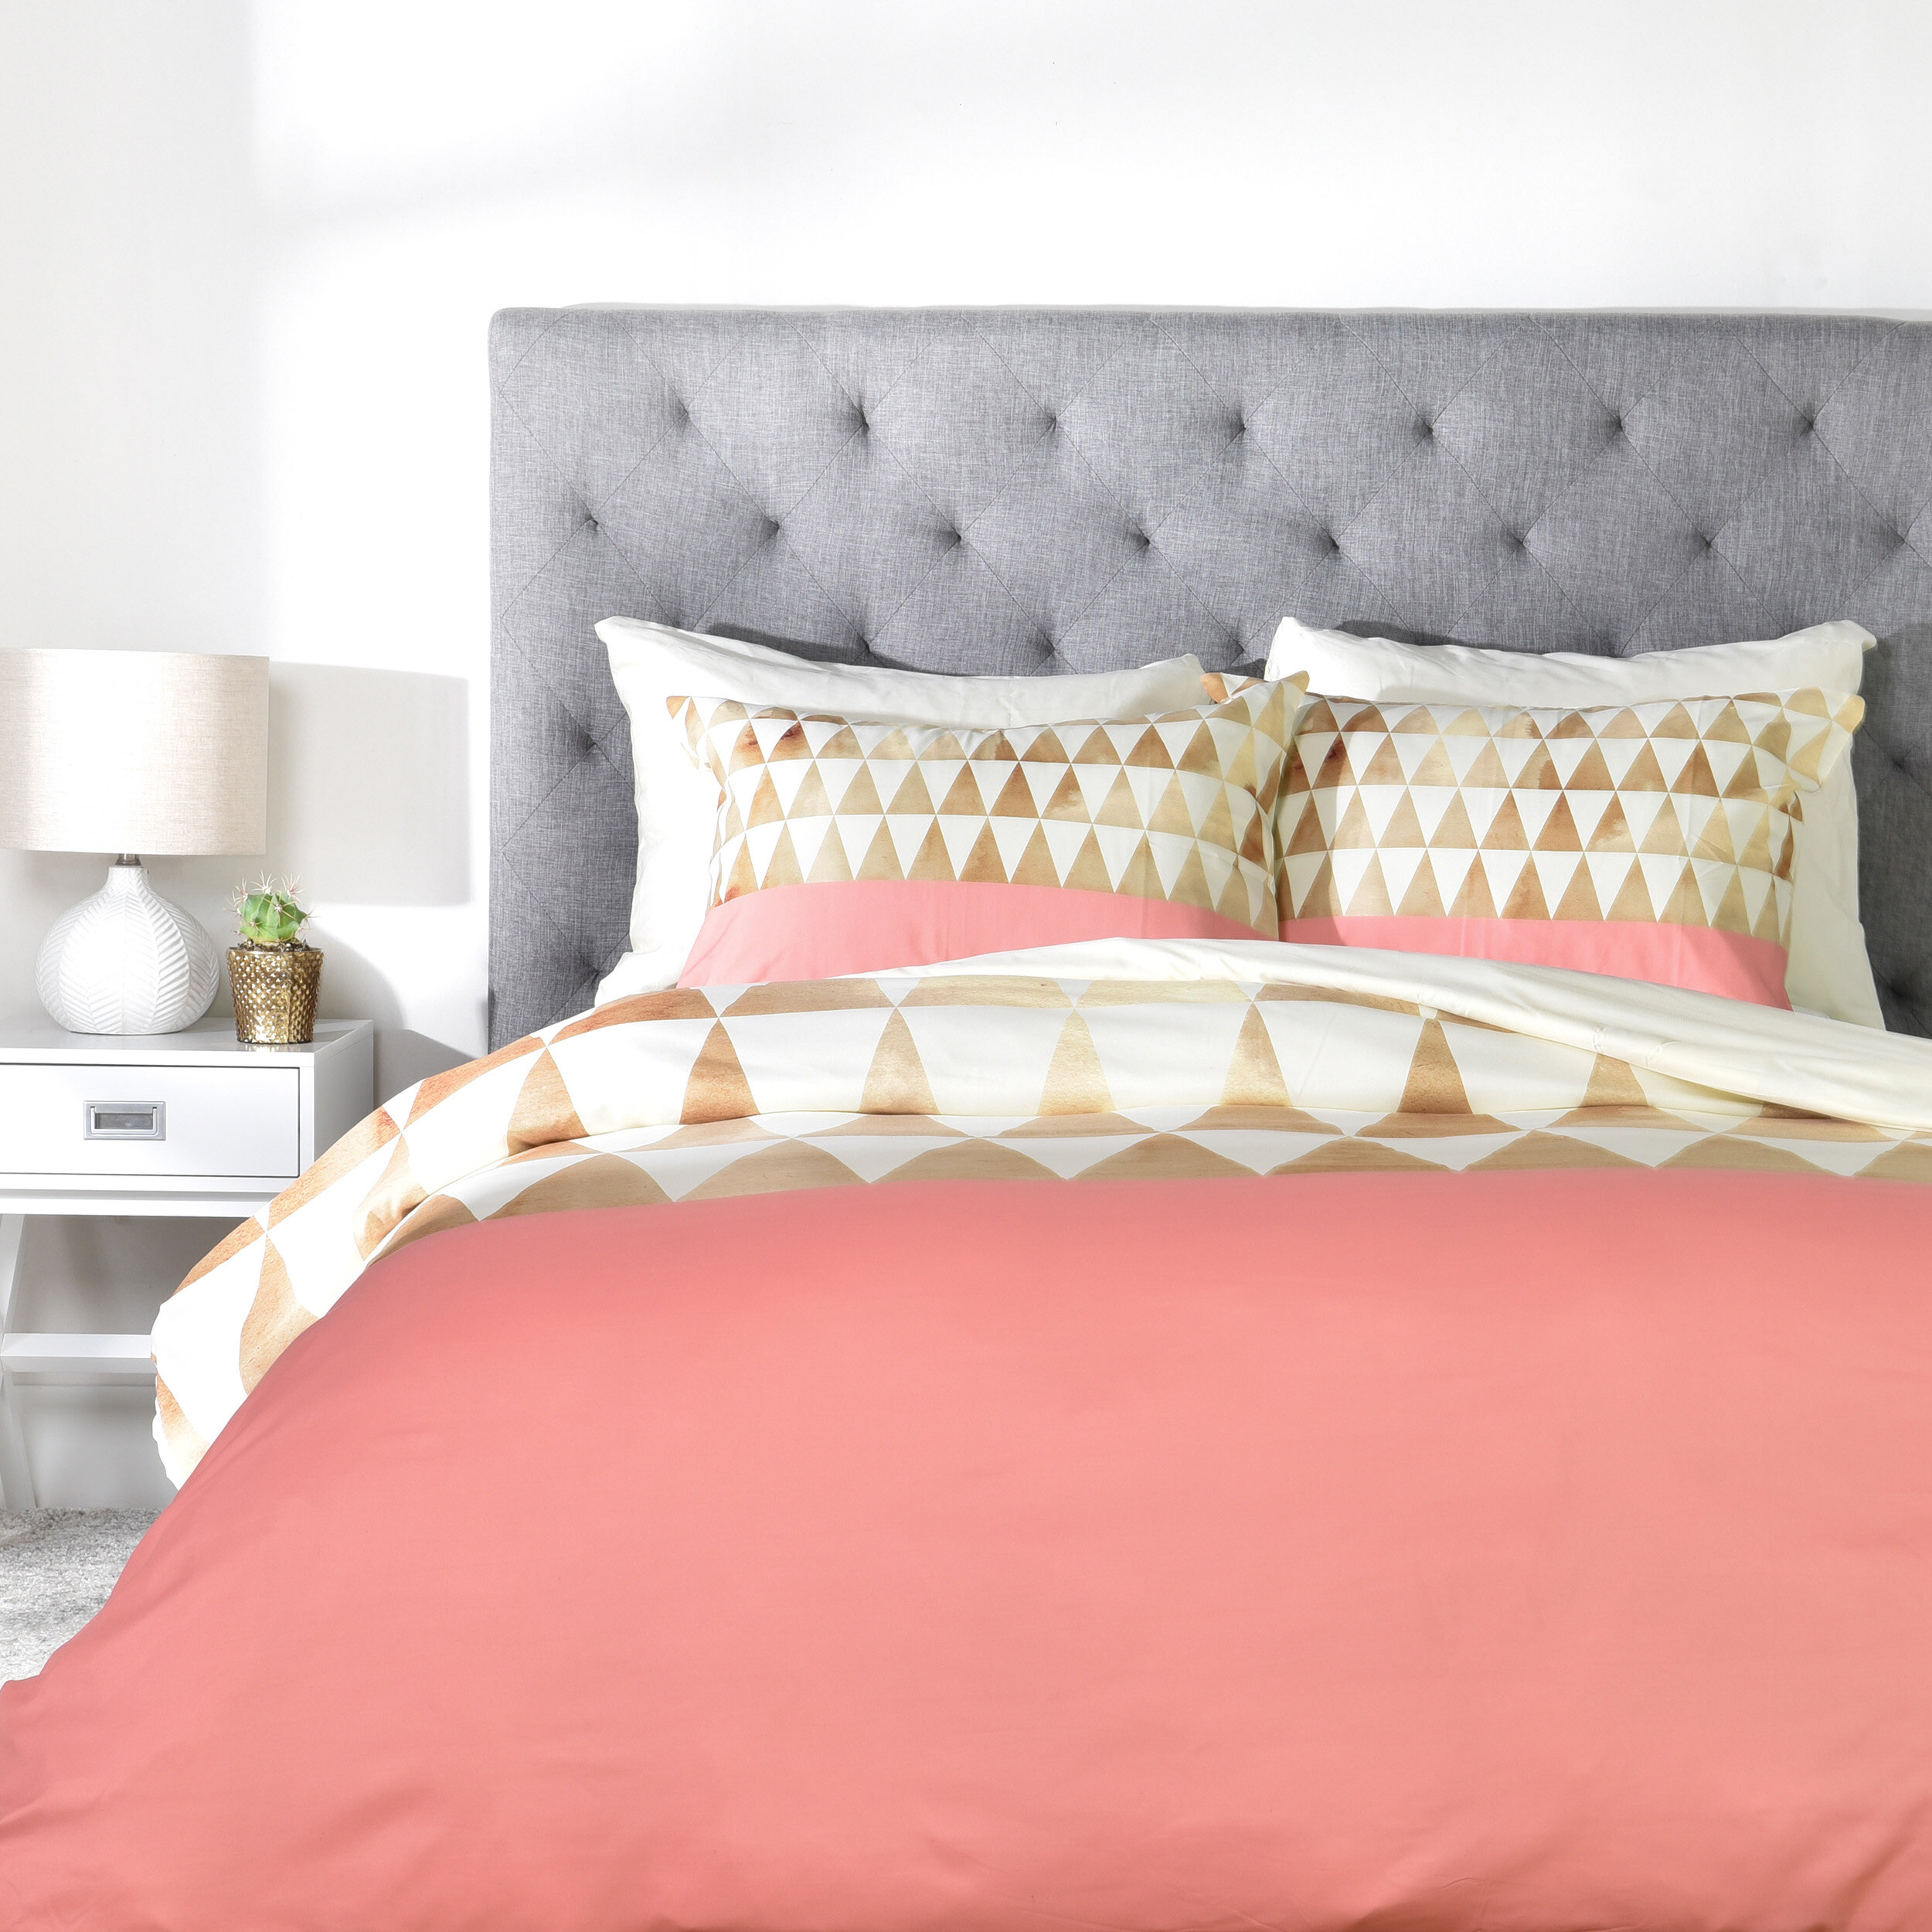 covers fleur brown le schatzi duvet cover lifestyle pink new products white